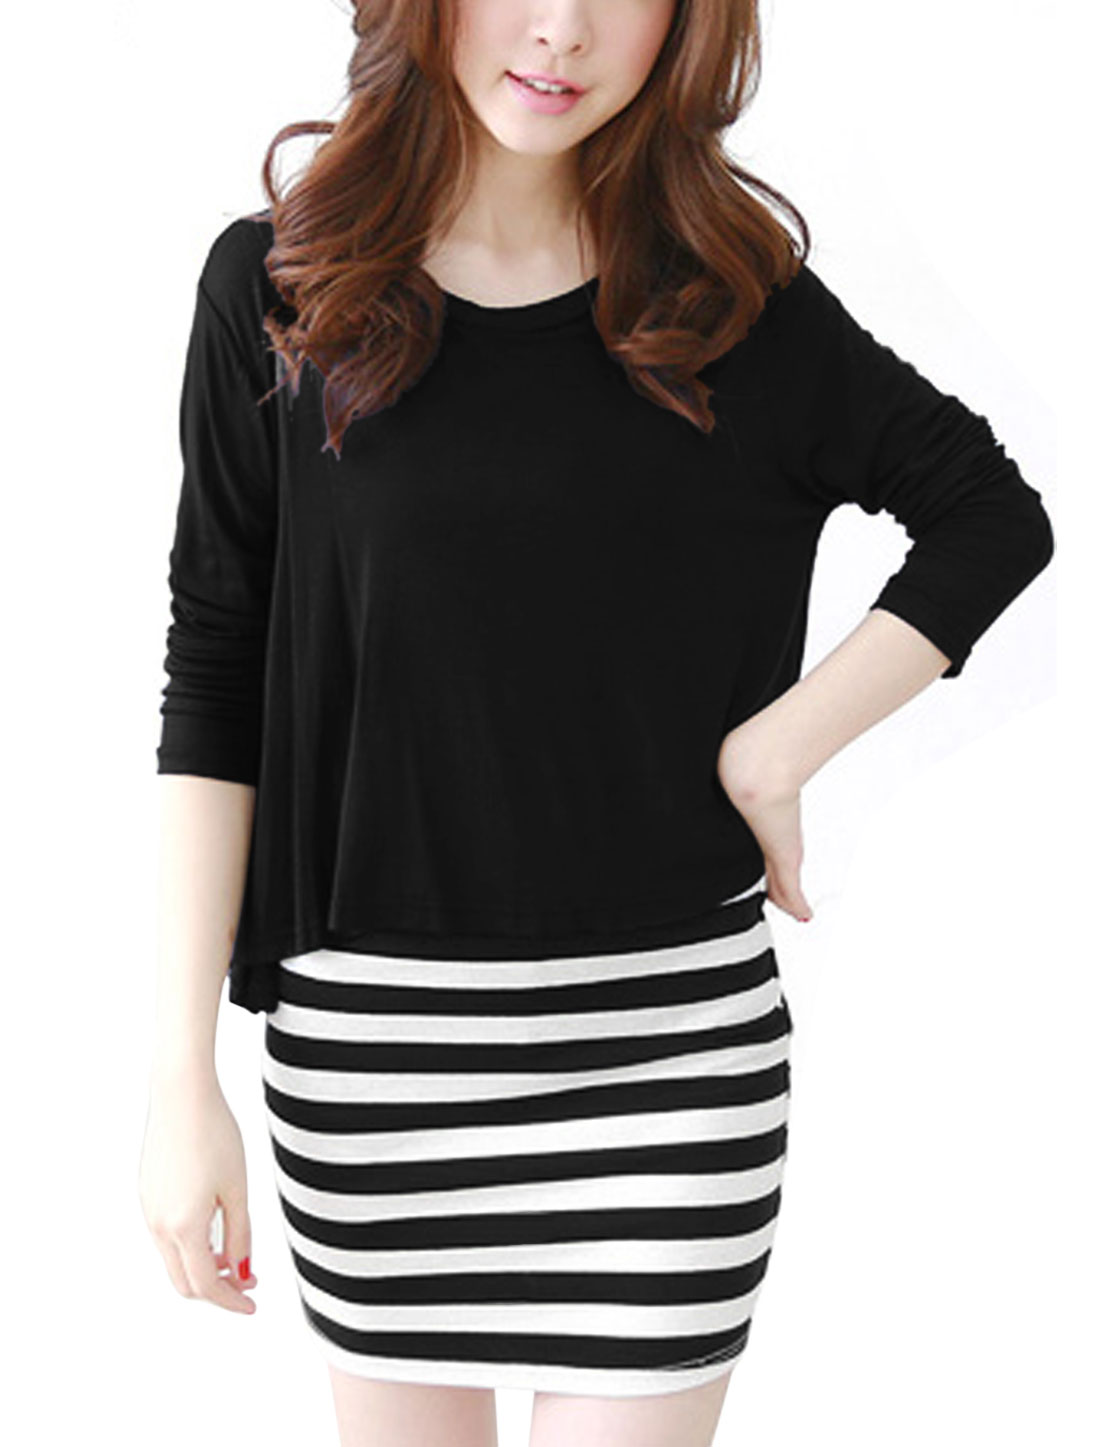 Ladies Black Round Neck Long Sleeves Top w Pullover Stripes Dress S